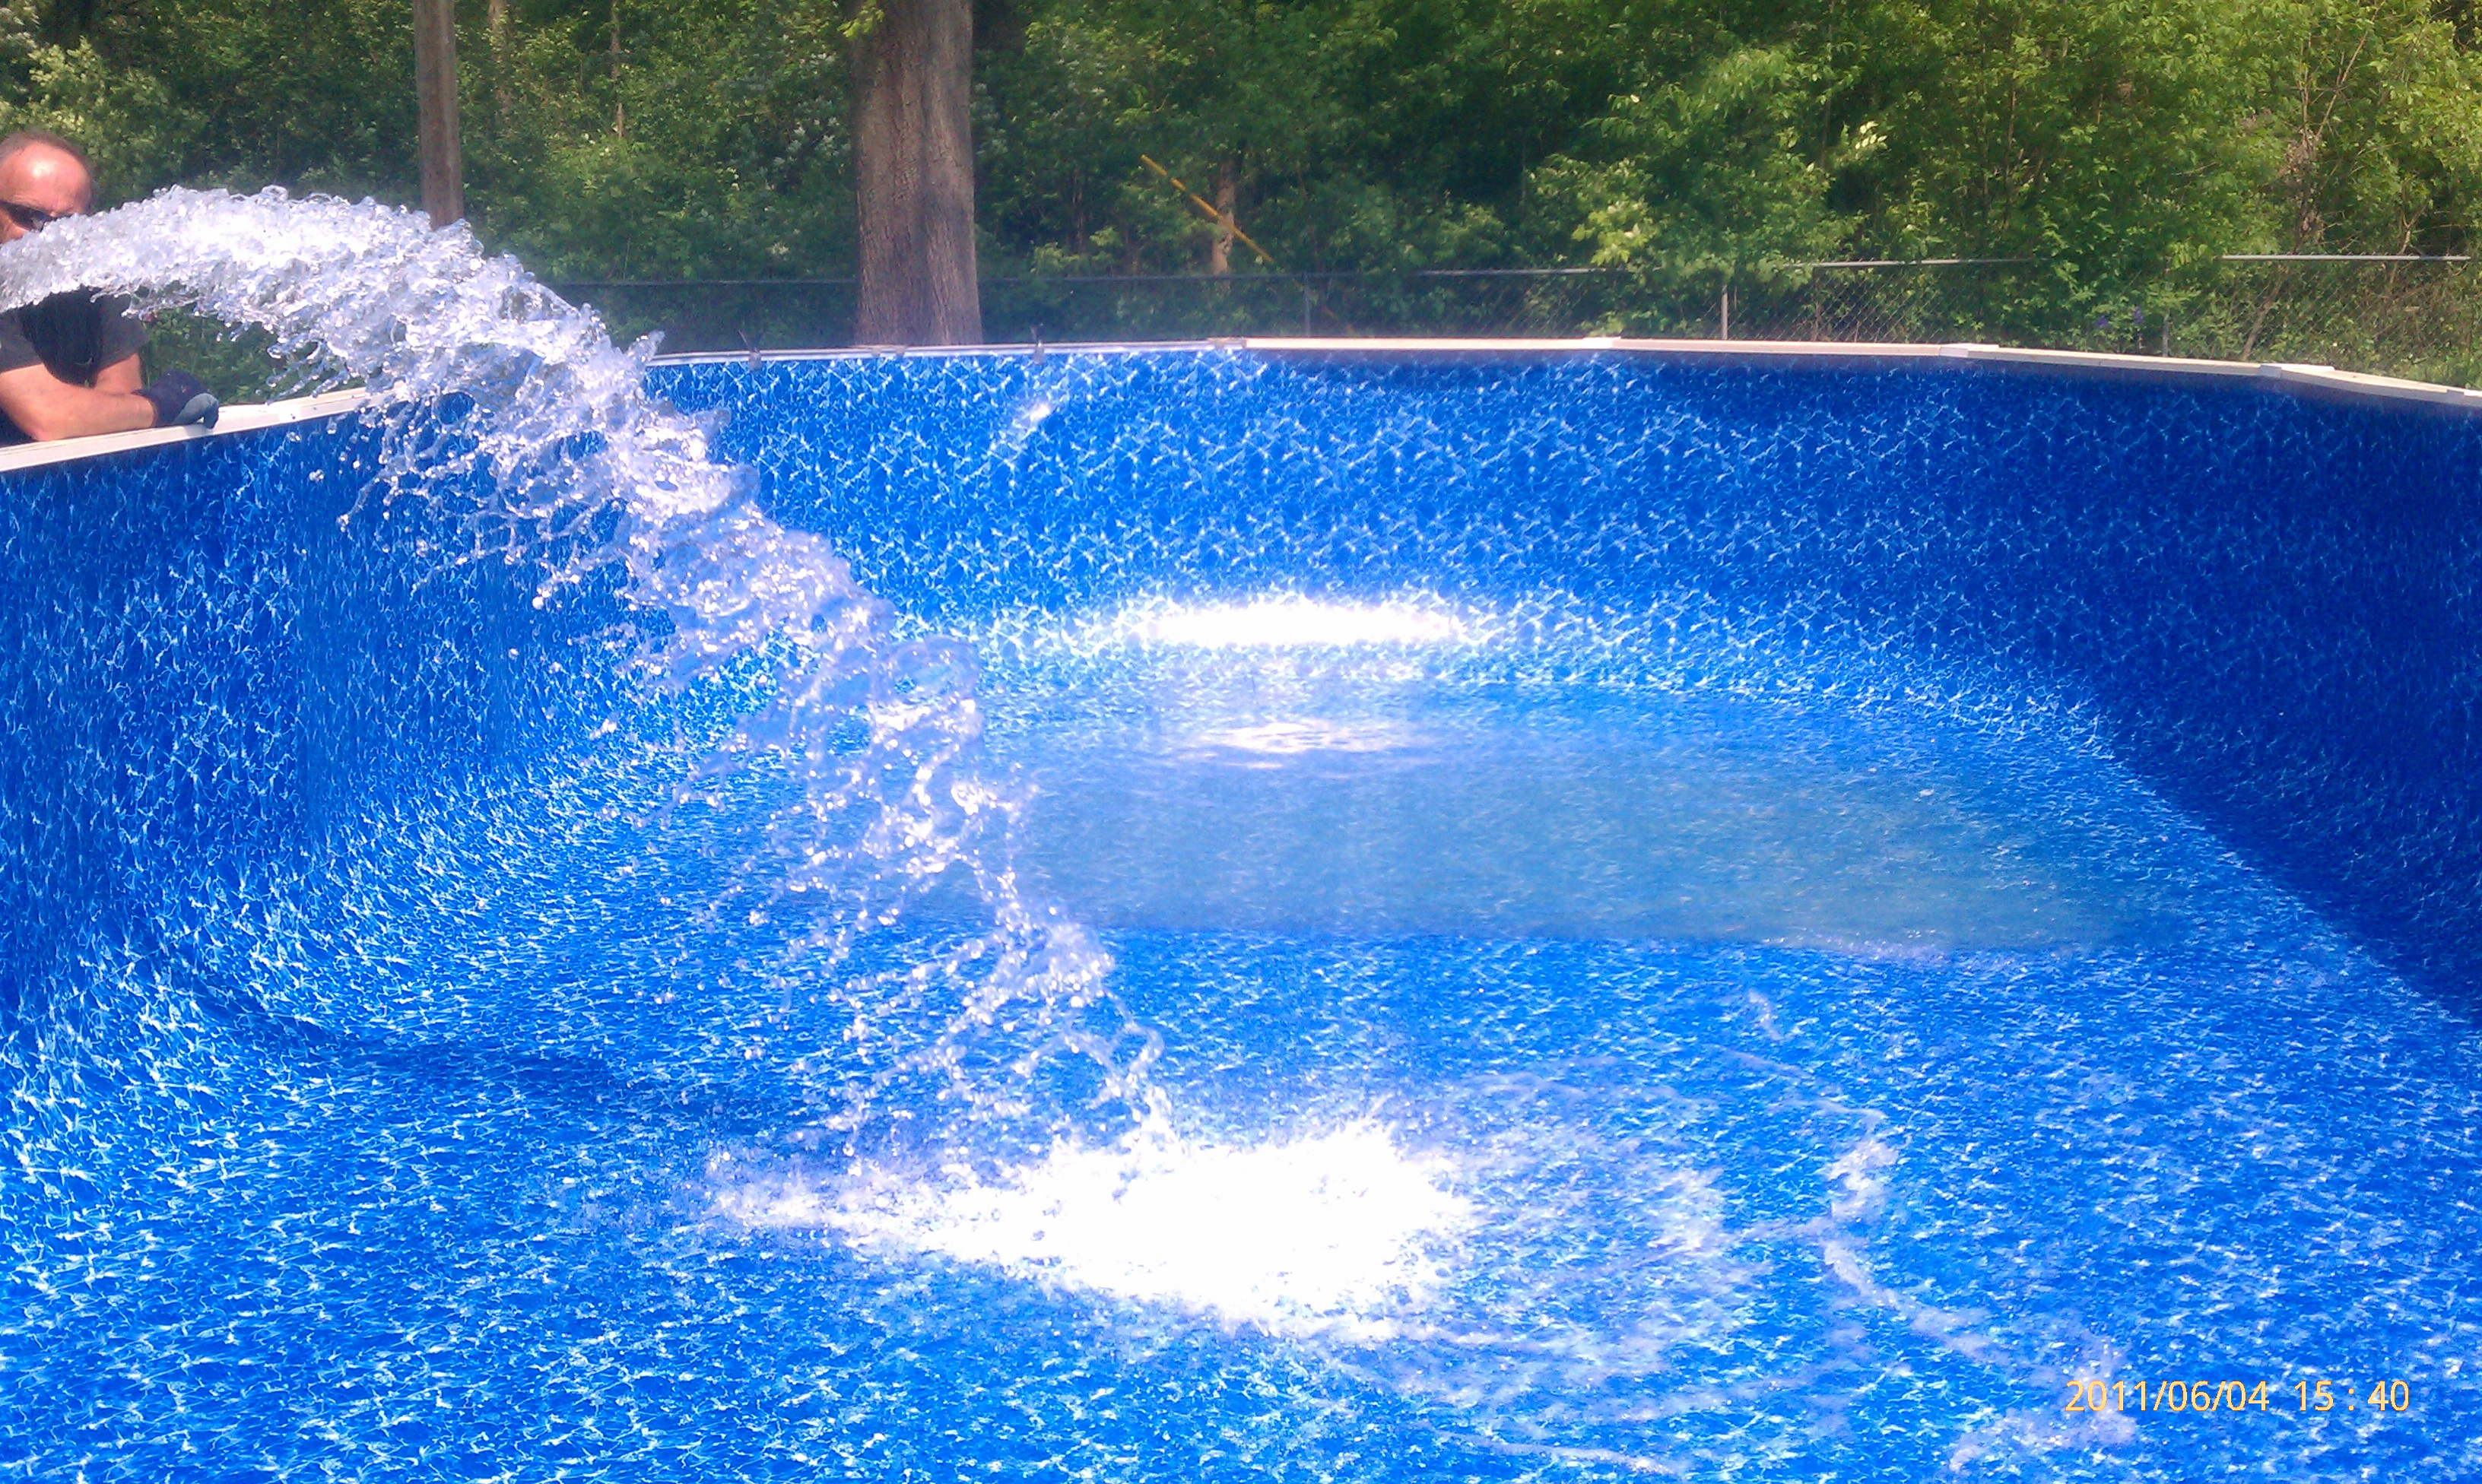 Pool liner replacement crystal clear pools mi - Crystal clear pools ...